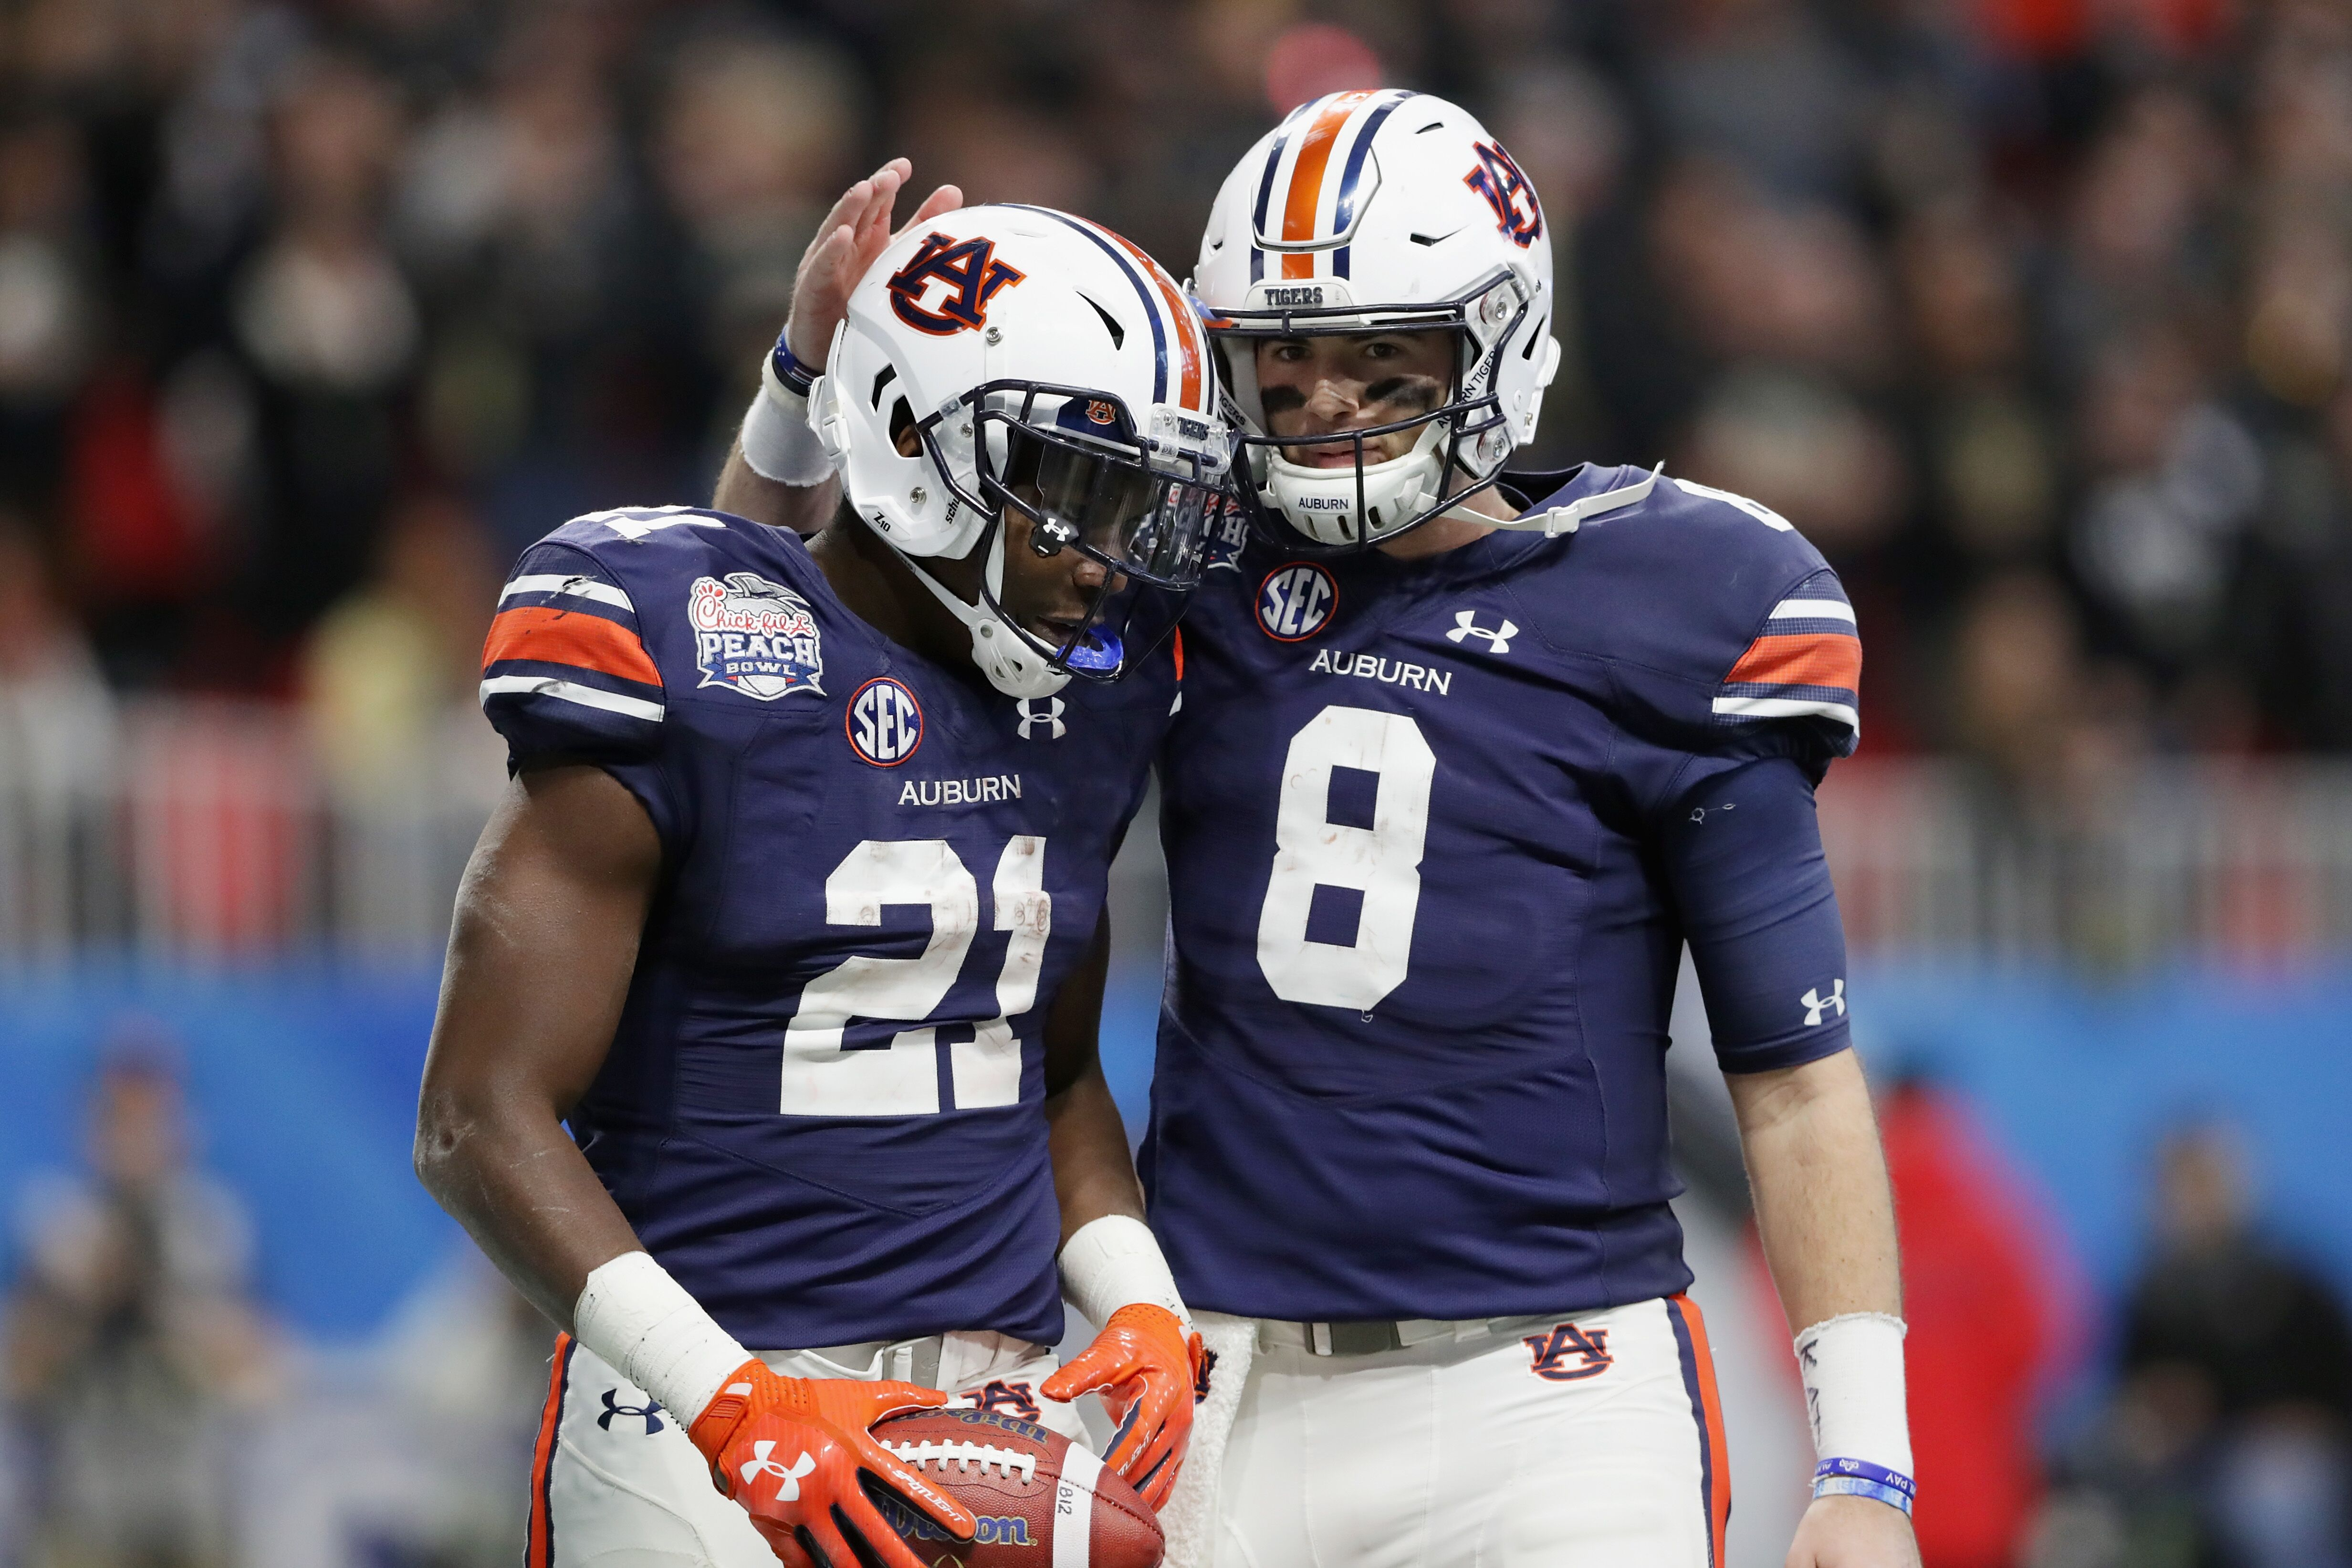 Auburn football: where does the Tiger offense turn in 2018?